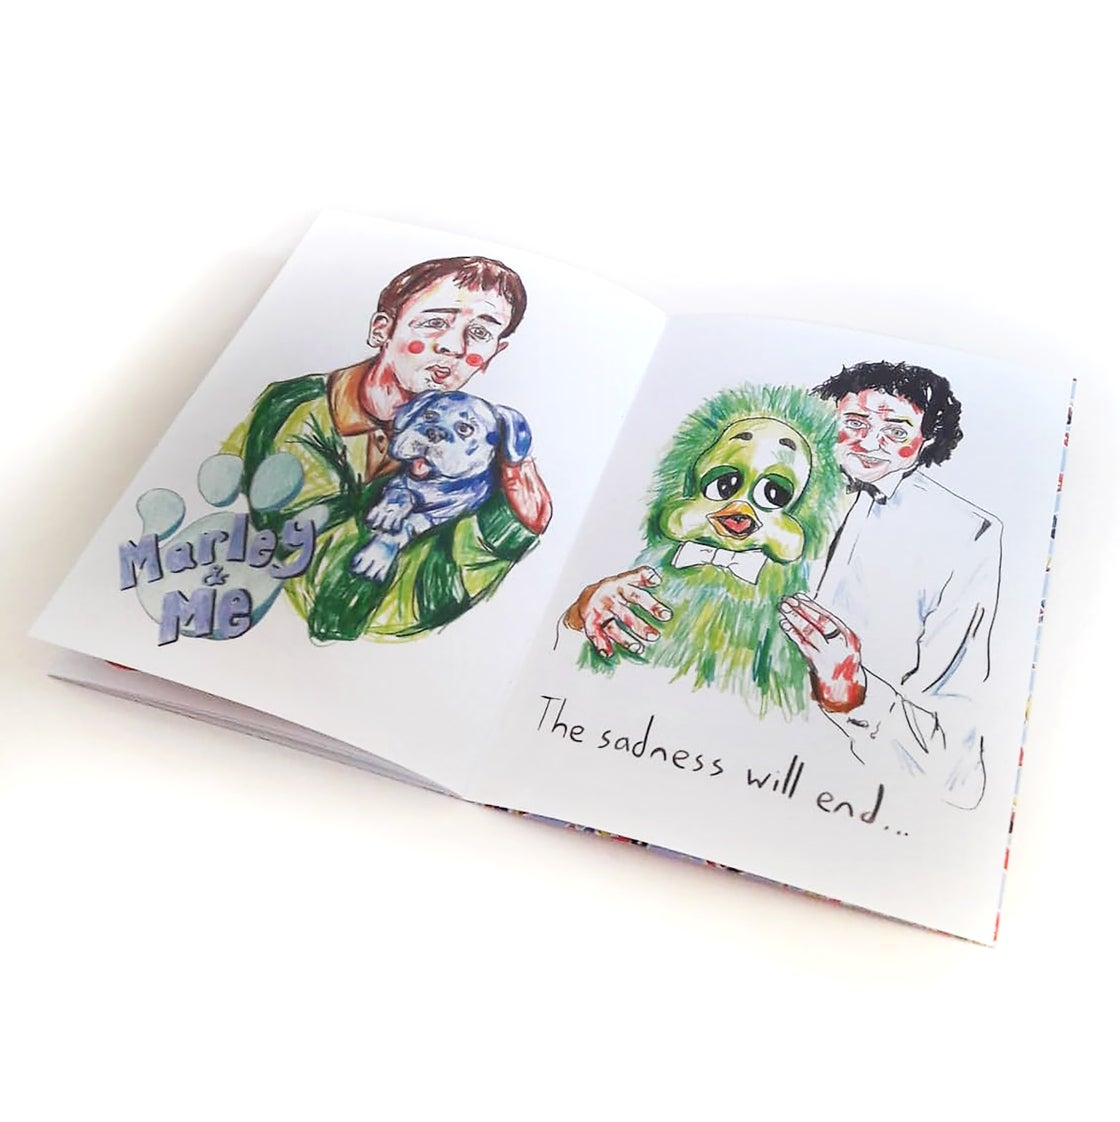 Image of CynicalElliot's Children's Favourites Zine